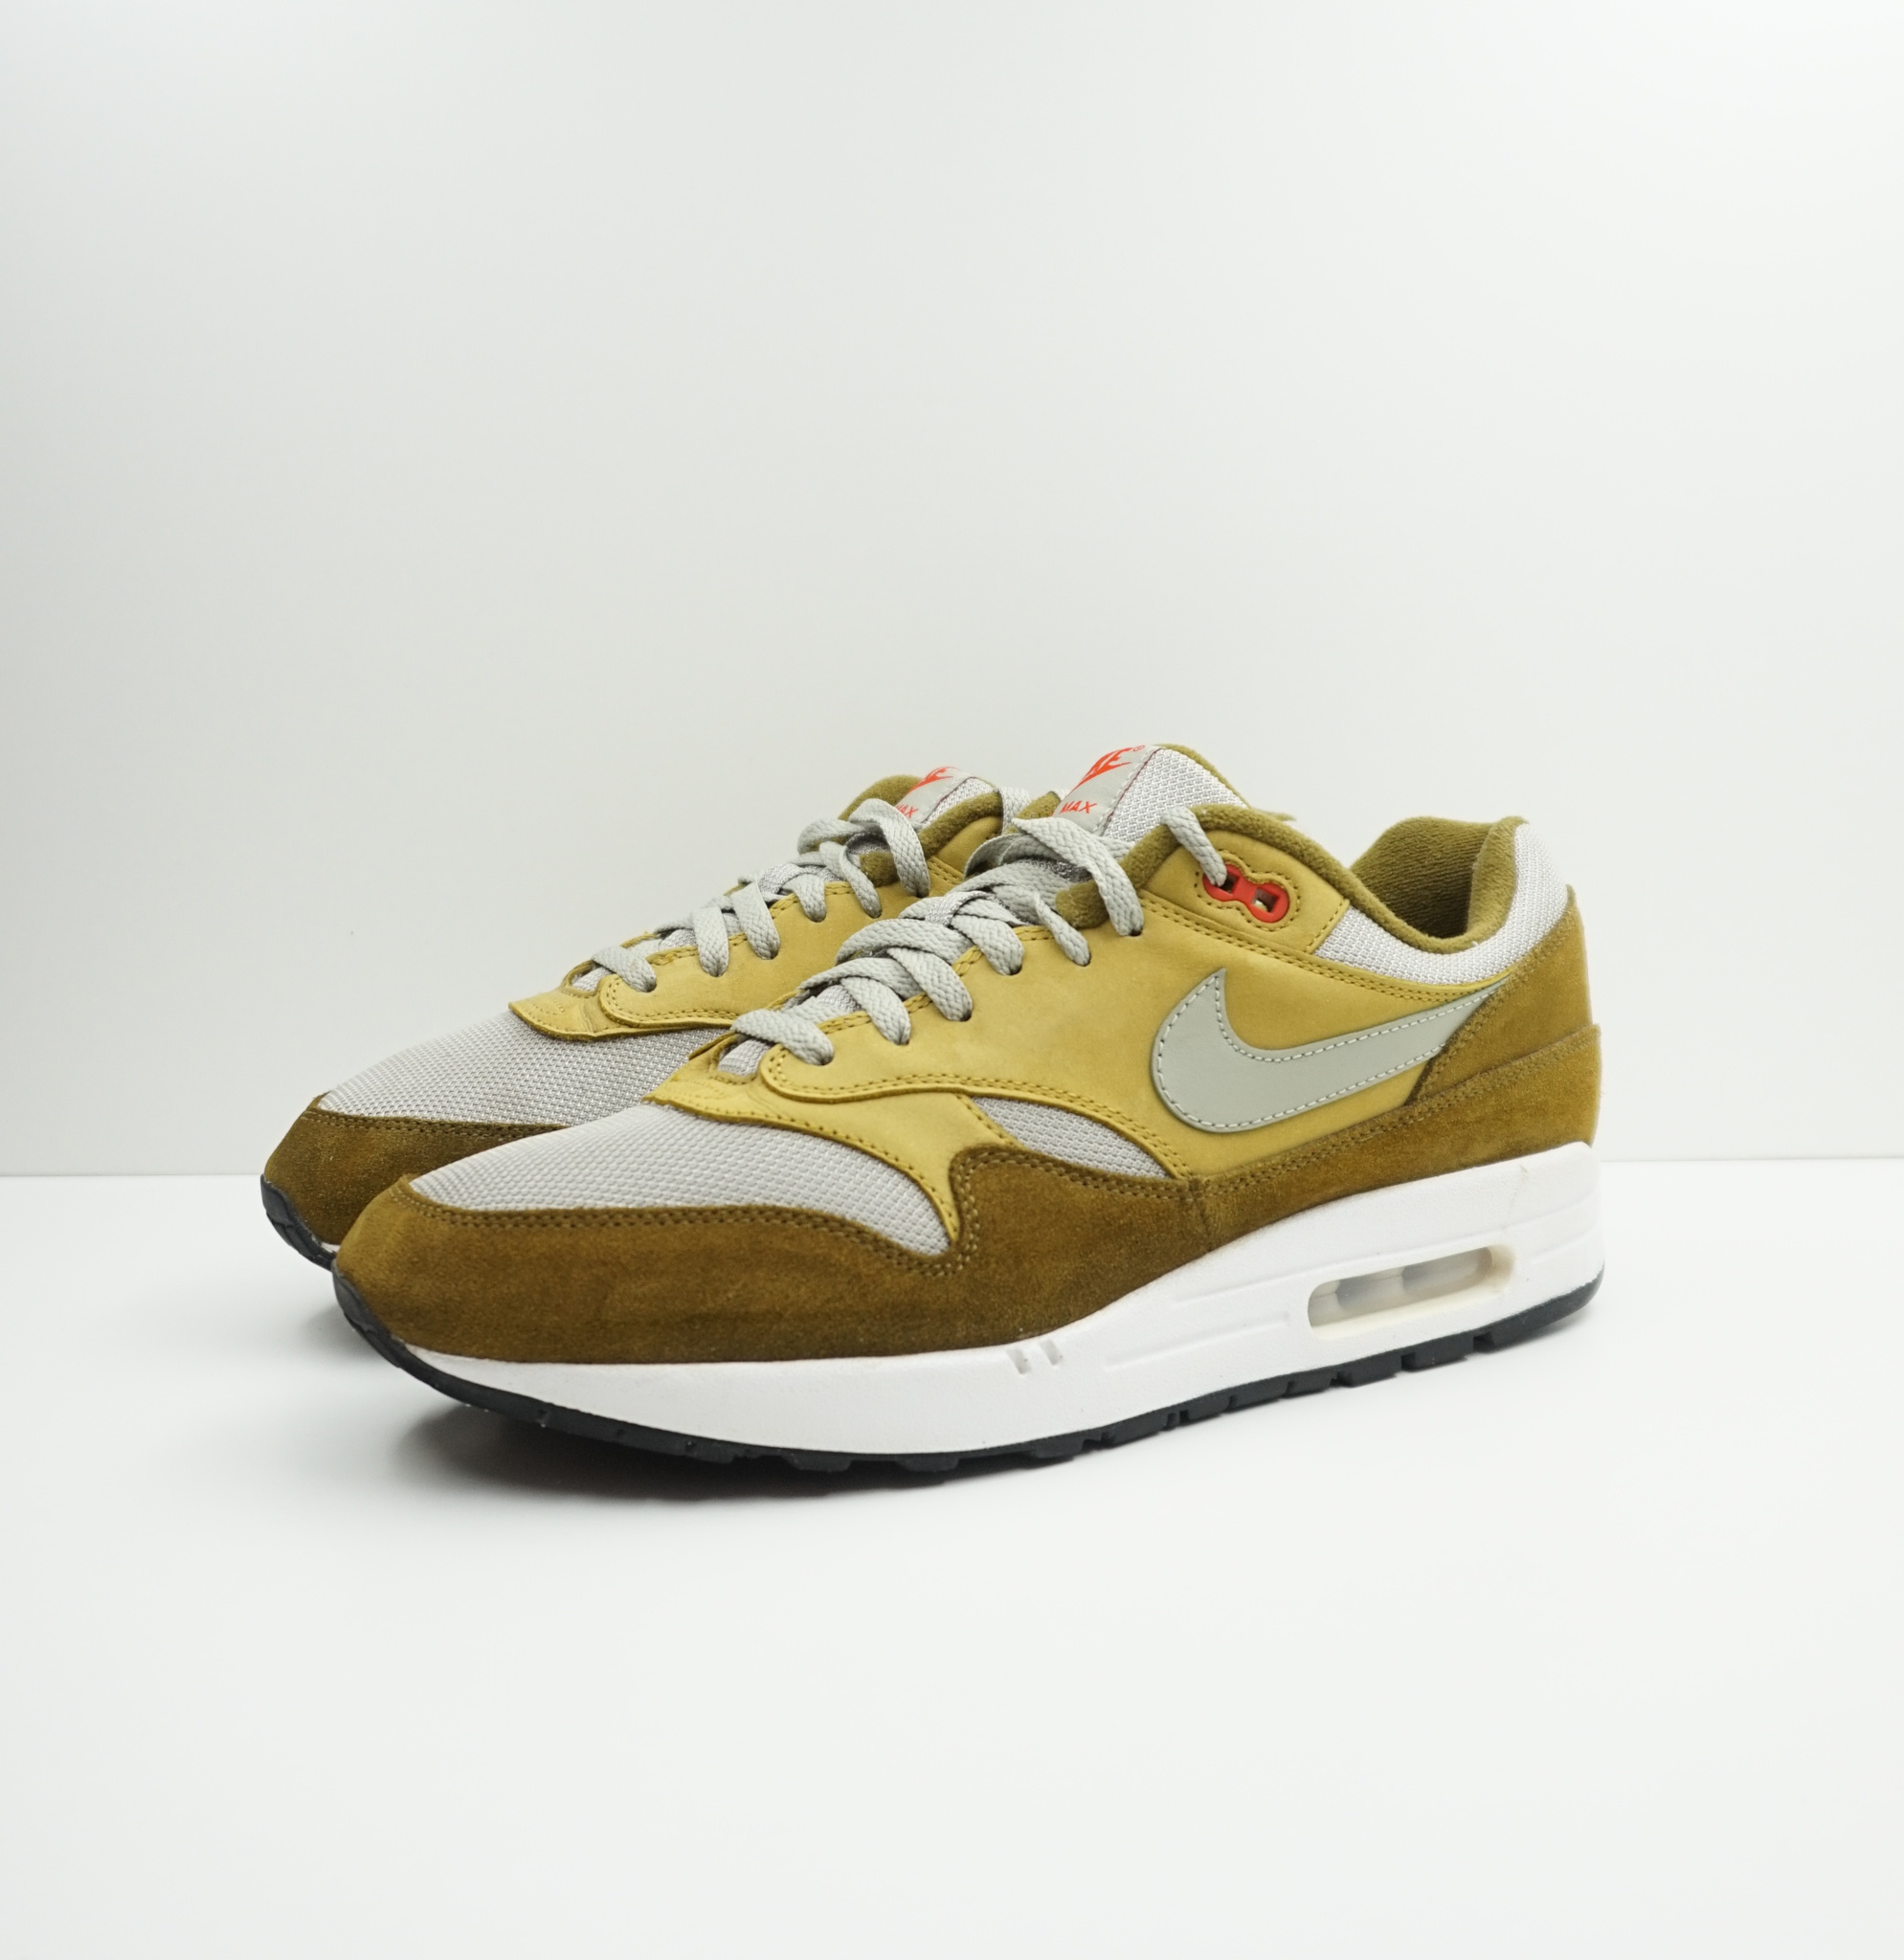 Nike Air Max 1 Curry Pack Olive